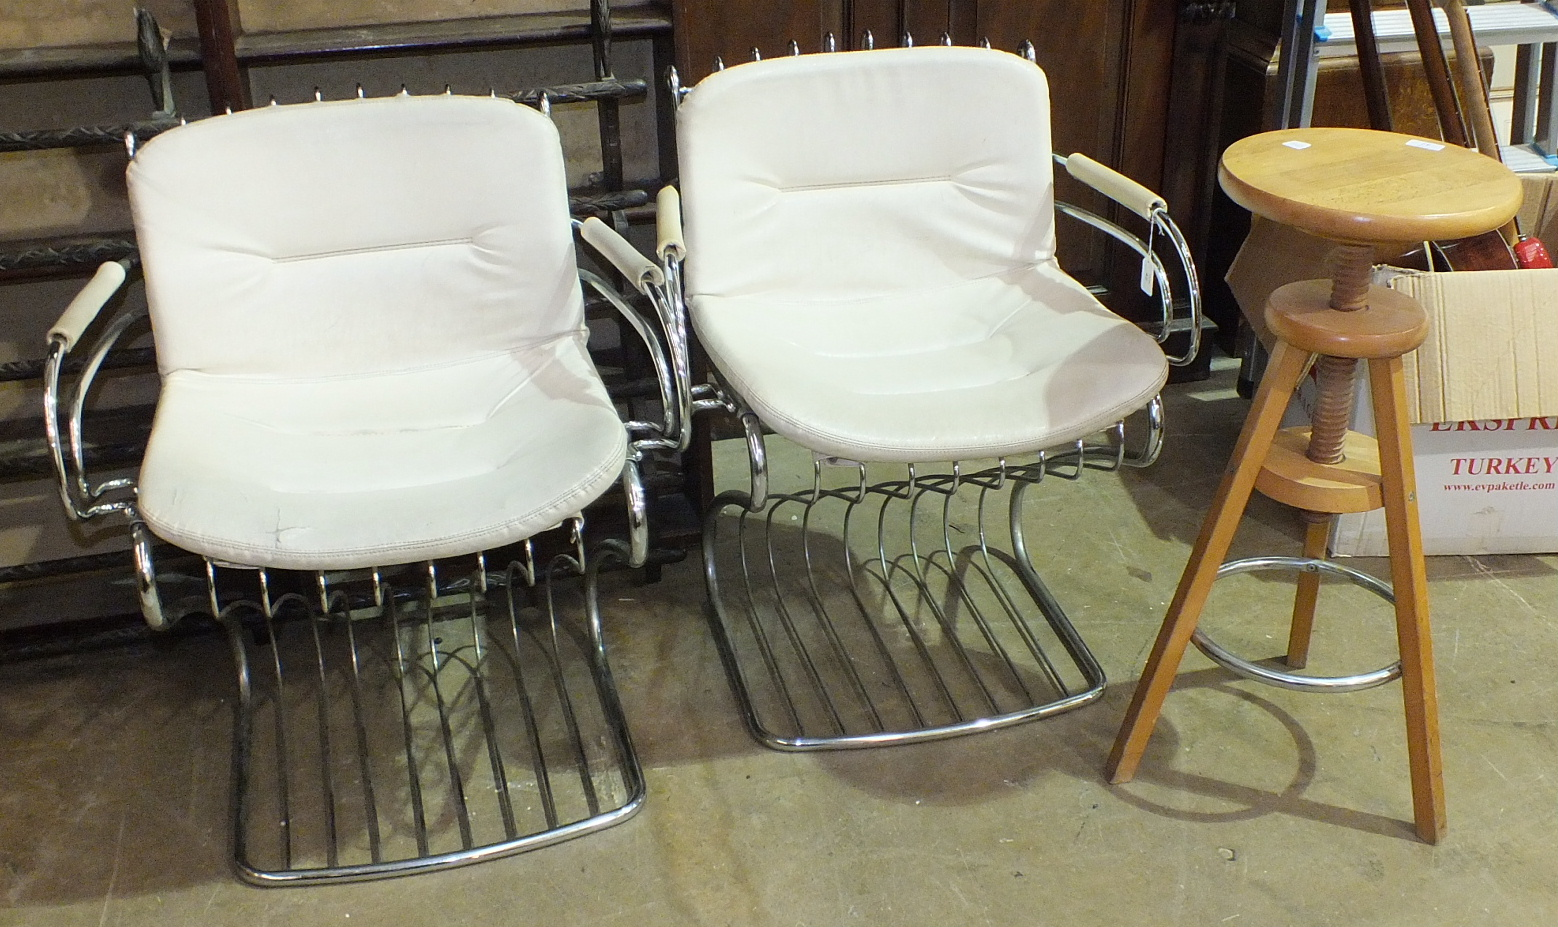 Lot 42 - A pair of chrome-framed armchairs with white Rexine seats and backs, (some damage to seats) and an